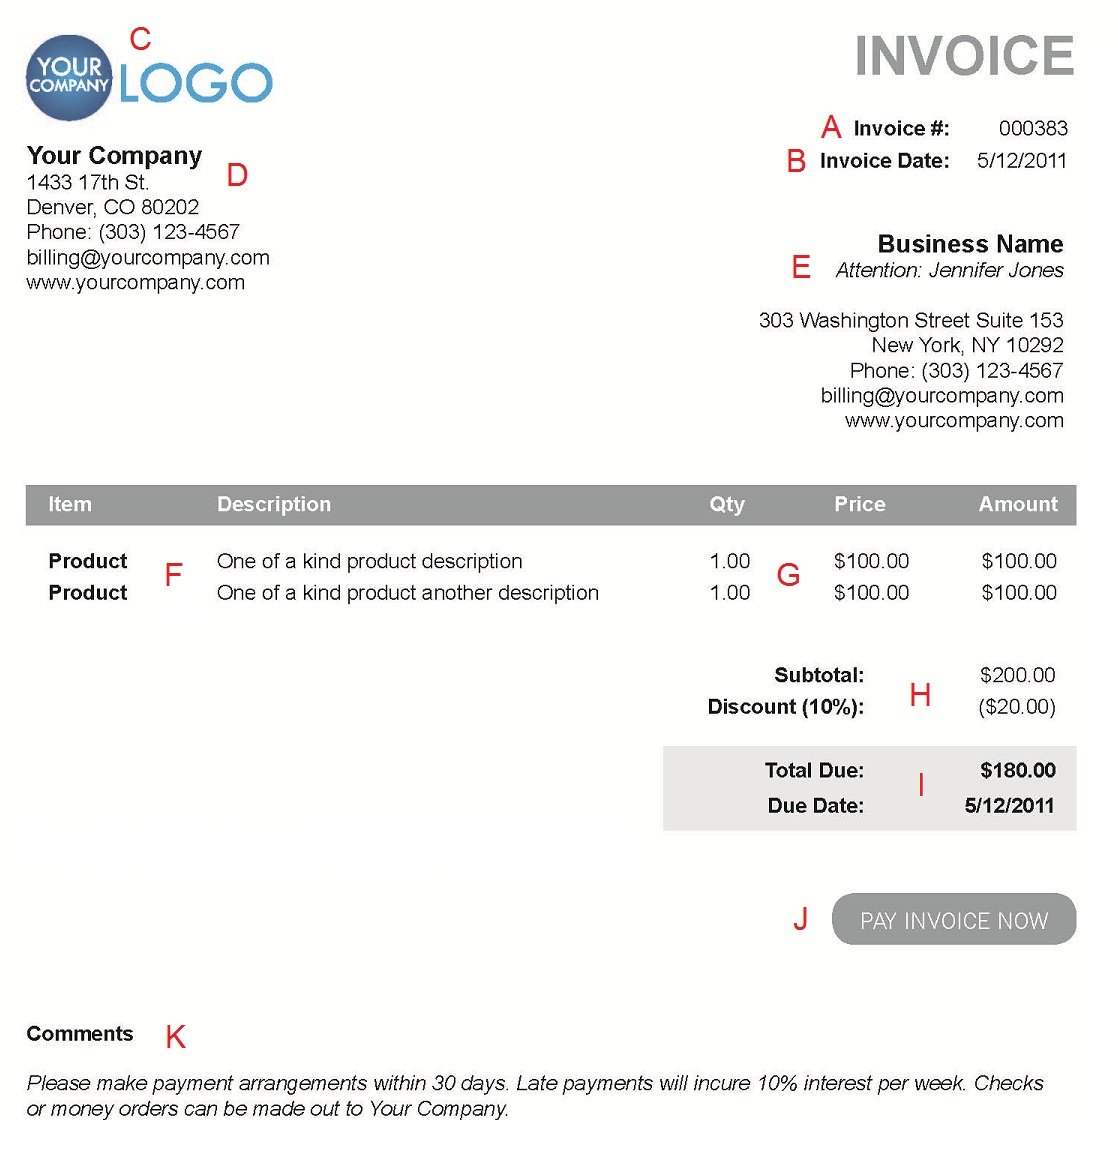 Occupyhistoryus  Fascinating The  Different Sections Of An Electronic Payment Invoice With Hot A  With Cool Healthport Invoice Also Invoice Cost Of Car In Addition Fake Invoices And Website Invoice As Well As Wholesale Invoice Additionally Proforma Invoice Meaning From Paysimplecom With Occupyhistoryus  Hot The  Different Sections Of An Electronic Payment Invoice With Cool A  And Fascinating Healthport Invoice Also Invoice Cost Of Car In Addition Fake Invoices From Paysimplecom